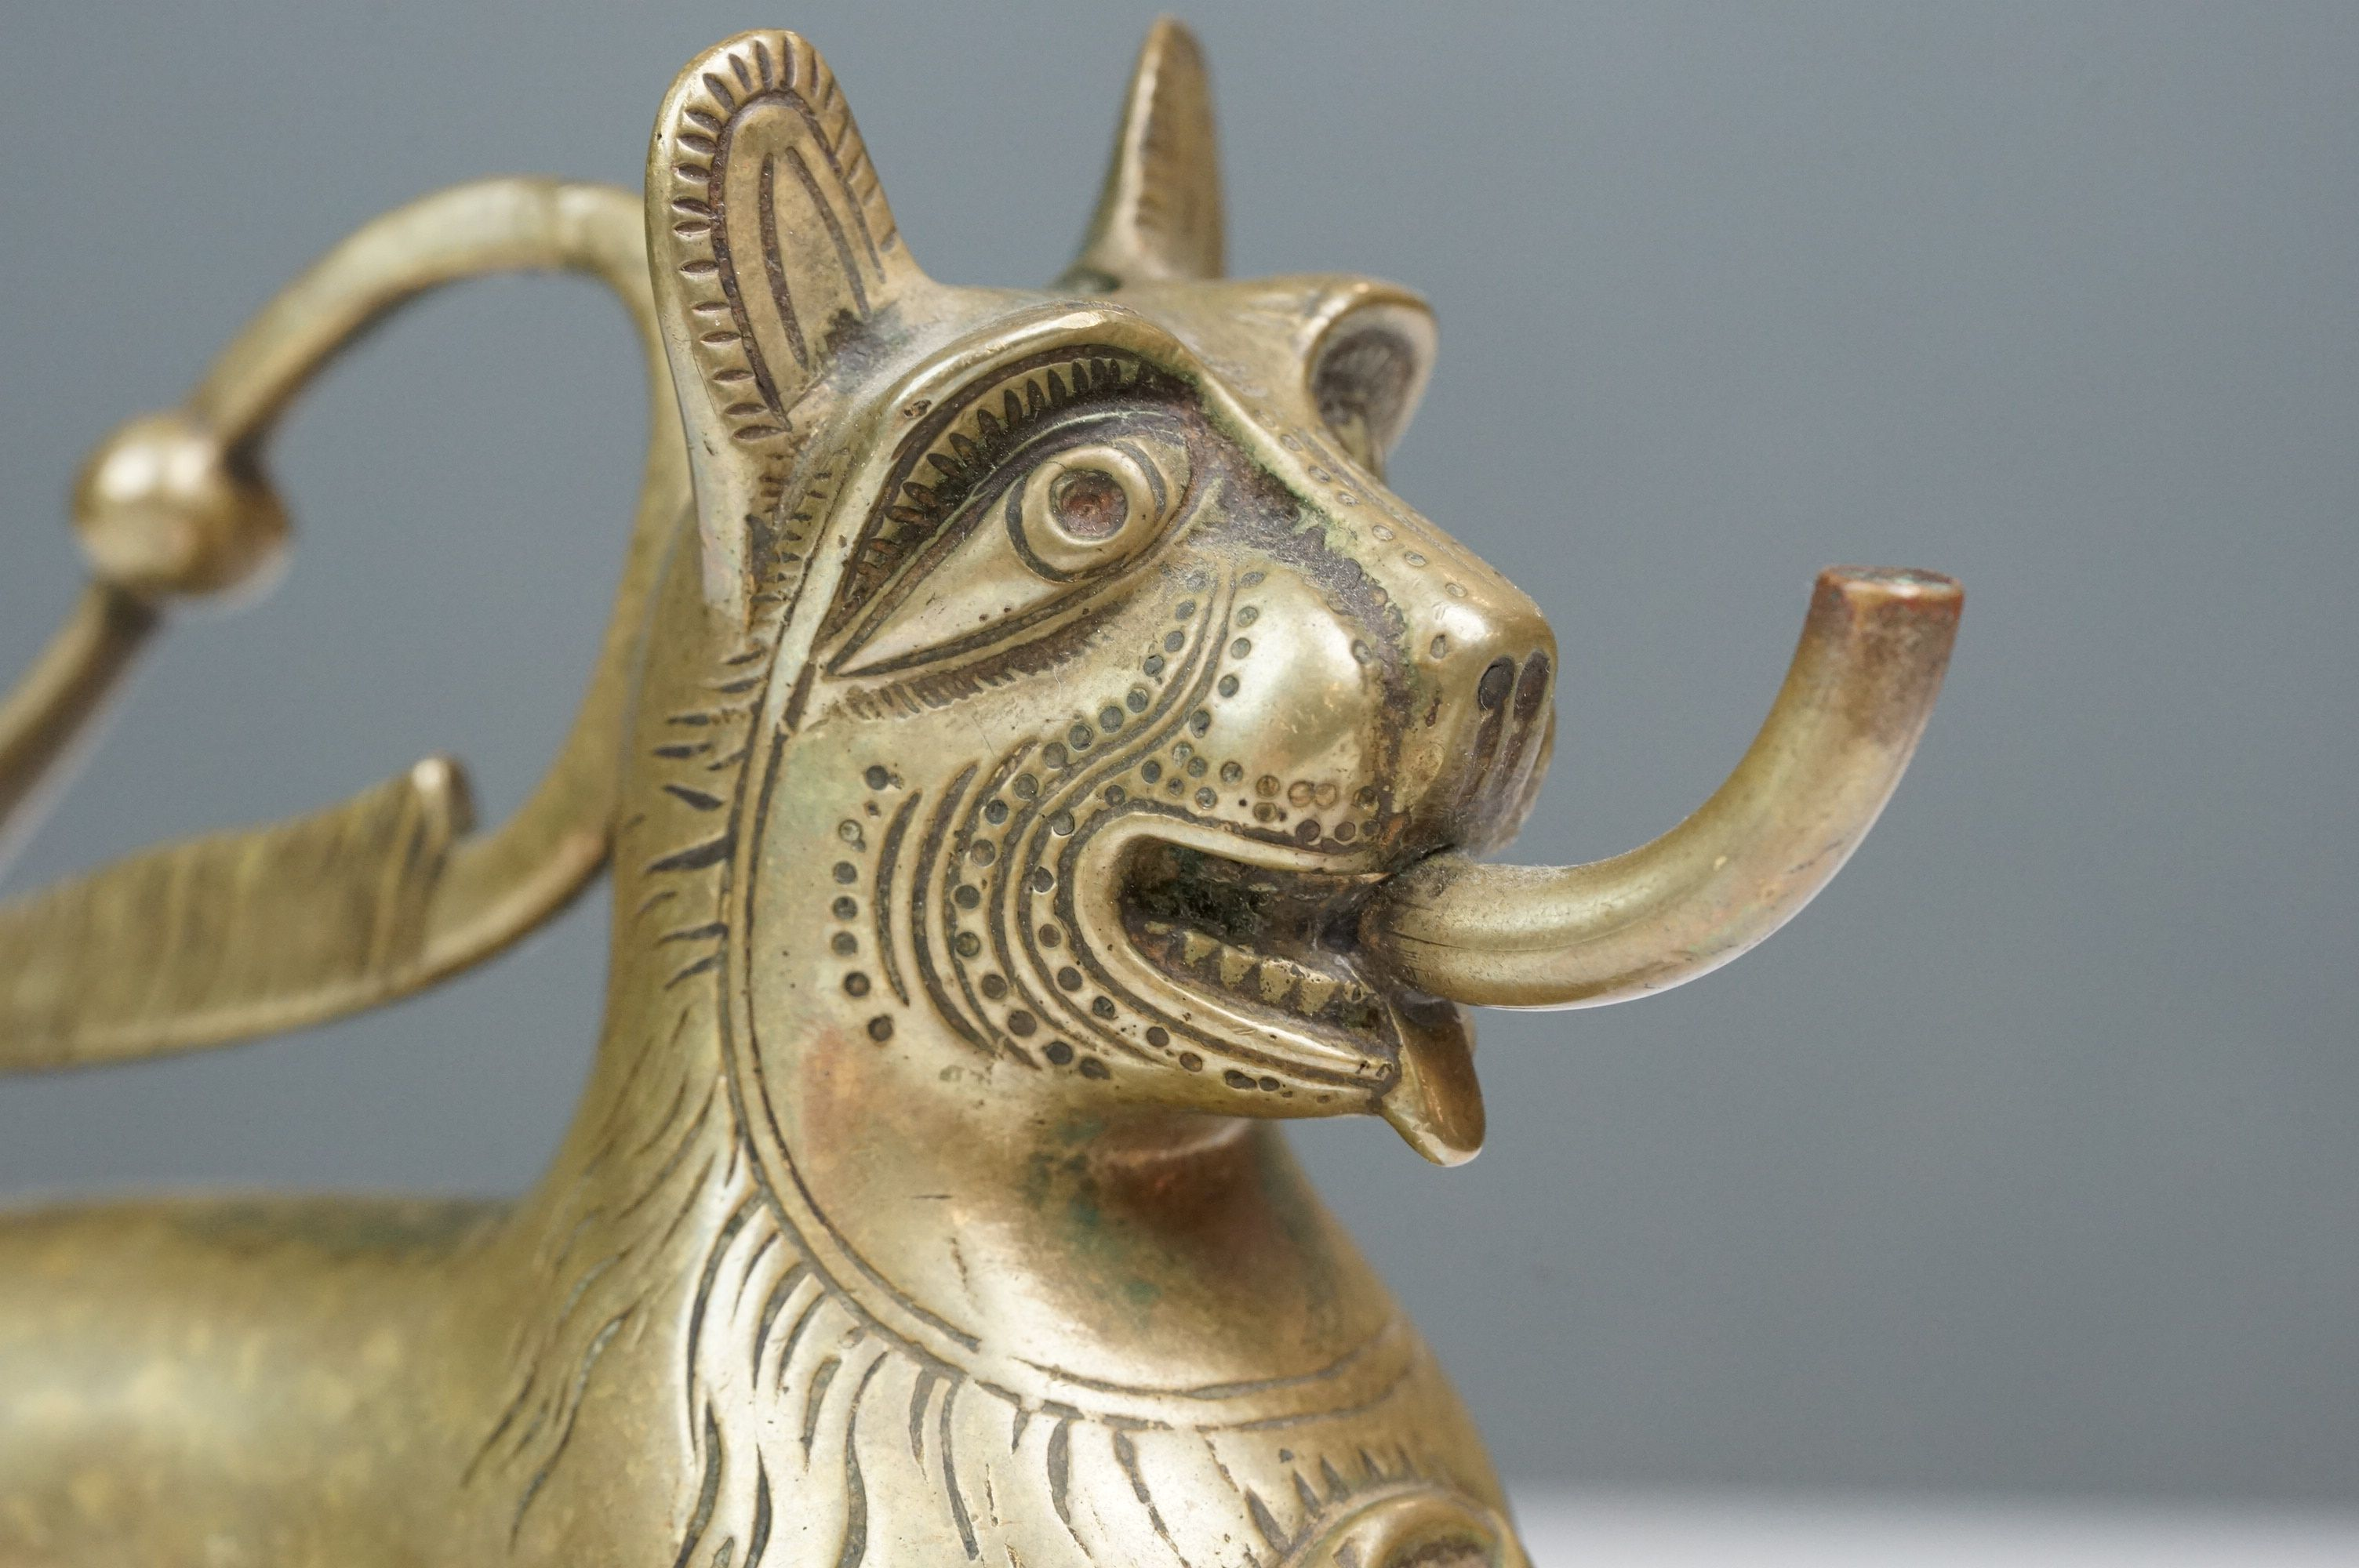 Antique brass table top cigar lighter in the form of a stylized dog - Image 7 of 9